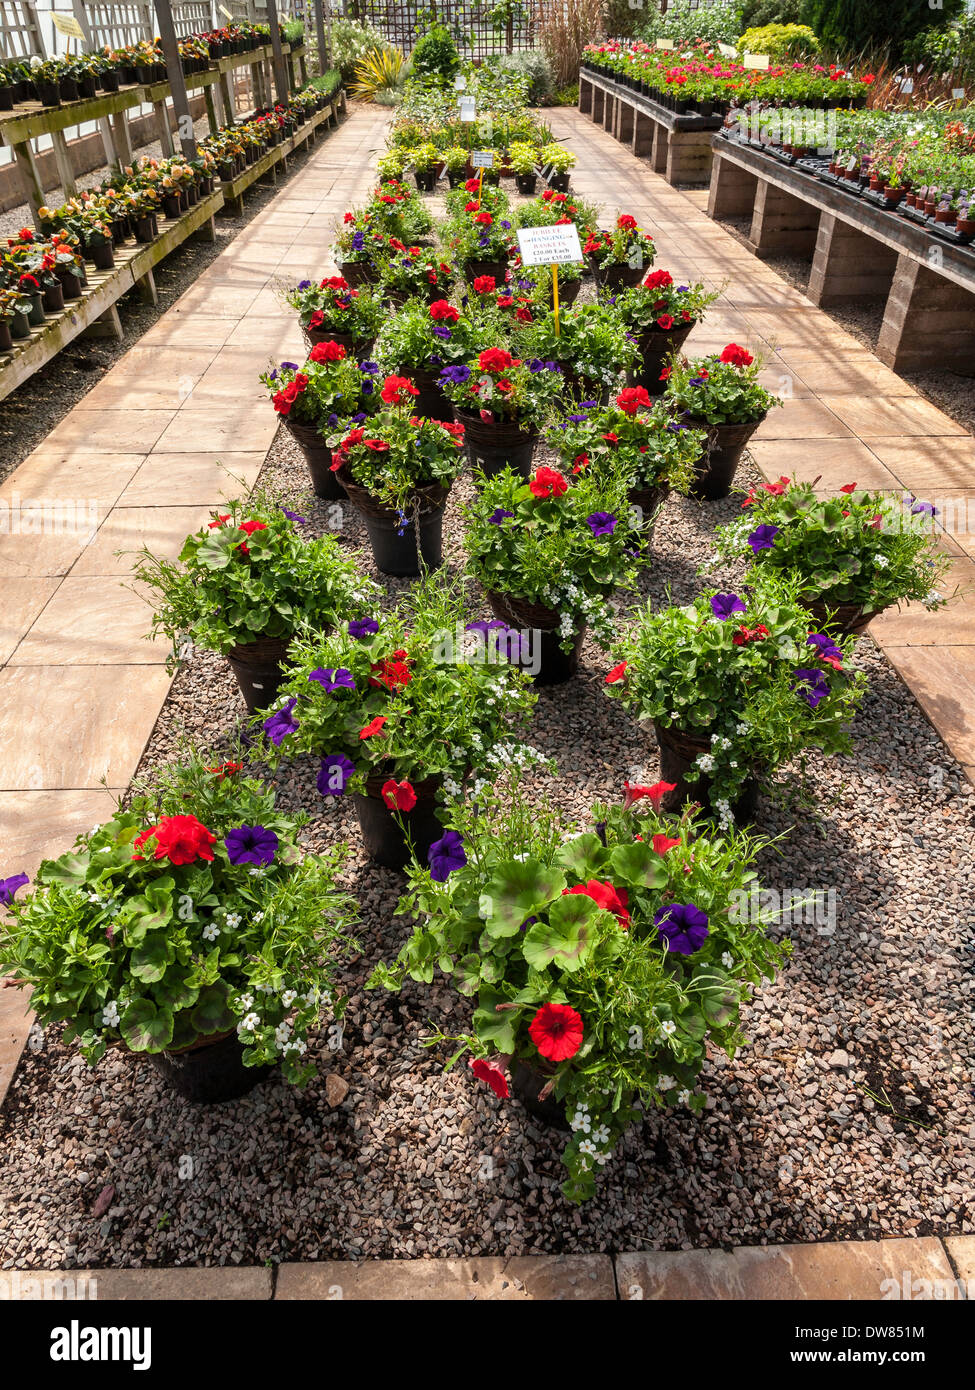 DISPLAY OF POTTED PLANTS FOR SALE IN GARDEN CENTER/CENTRE UK - Stock Image